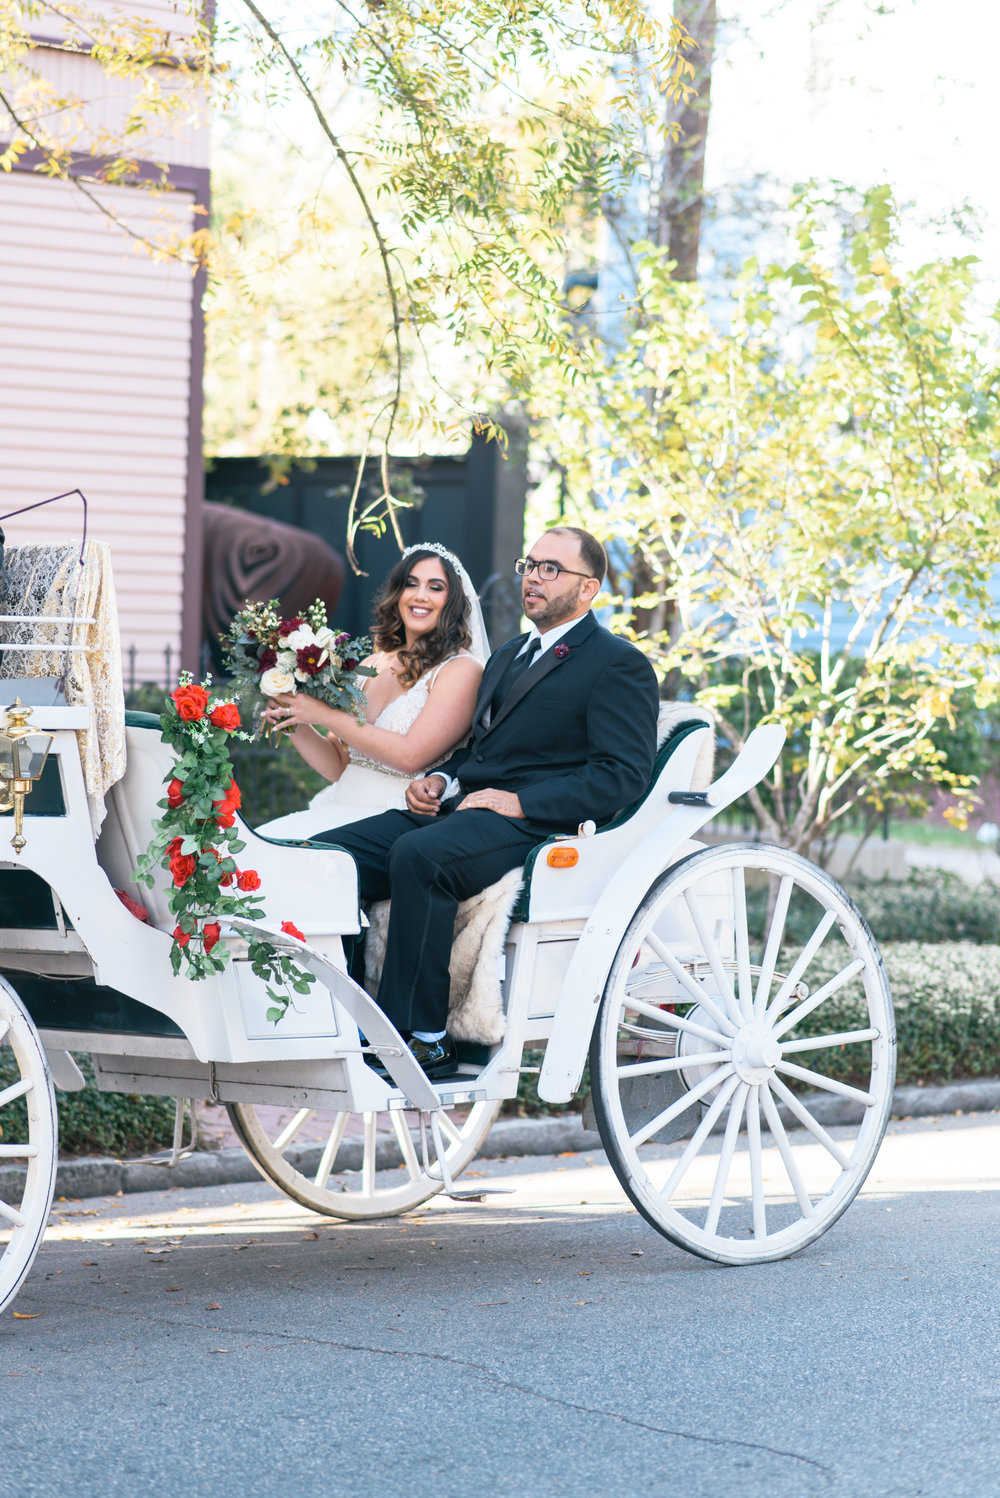 Iggy-and-yesenia-savannah-railroad-museum-wedding-meg-hill-photo- (324 of 1037).jpg